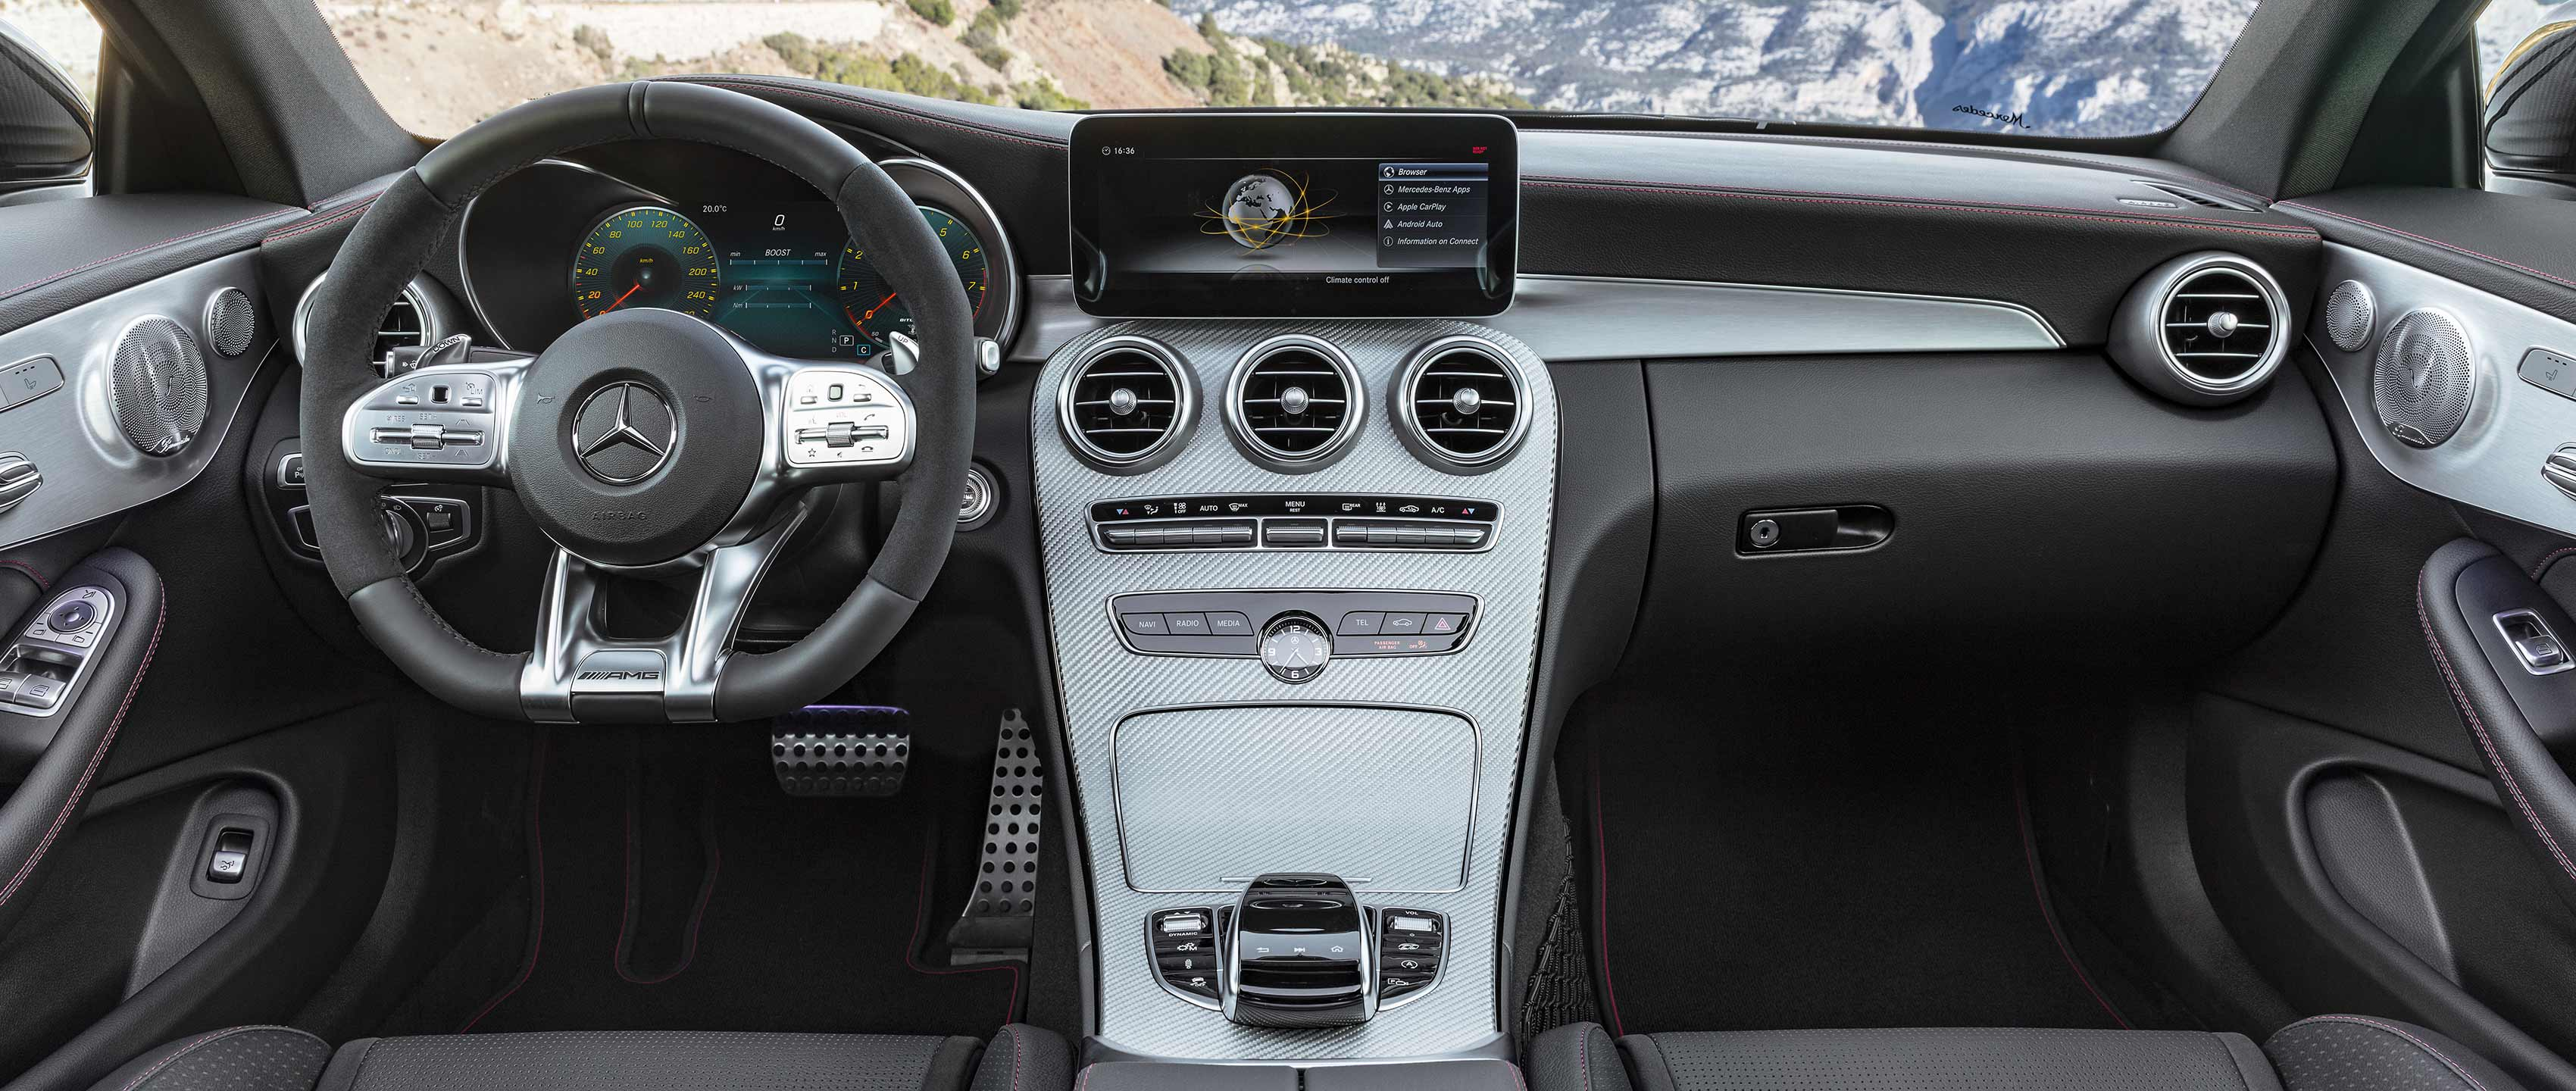 Mercedes-AMG C 43 Coupé: interior